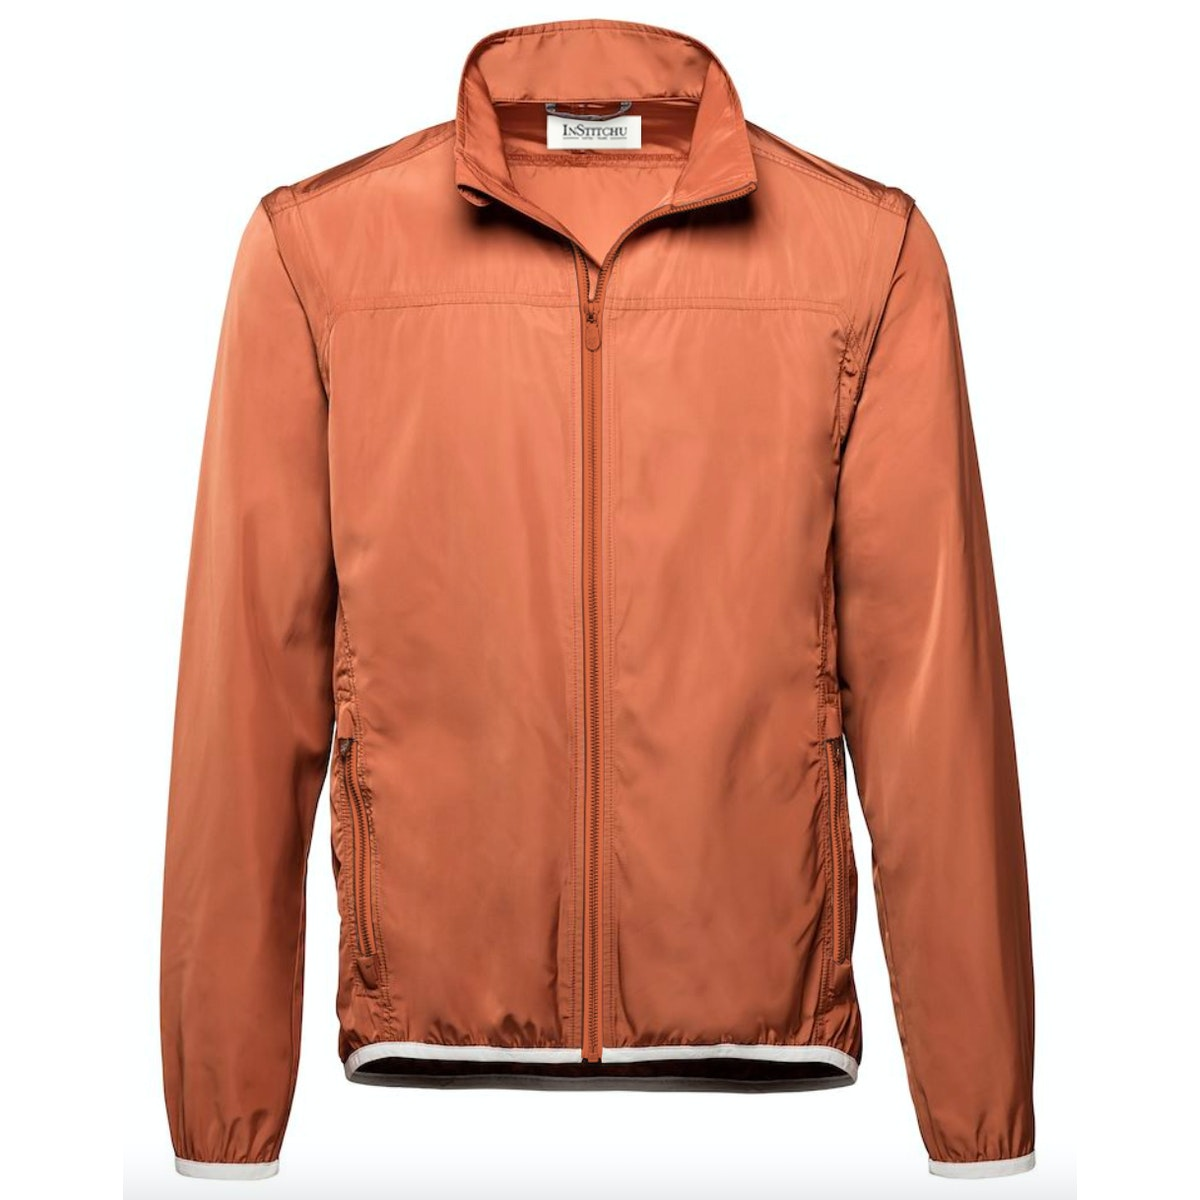 The Woods Clay Golf Jacket